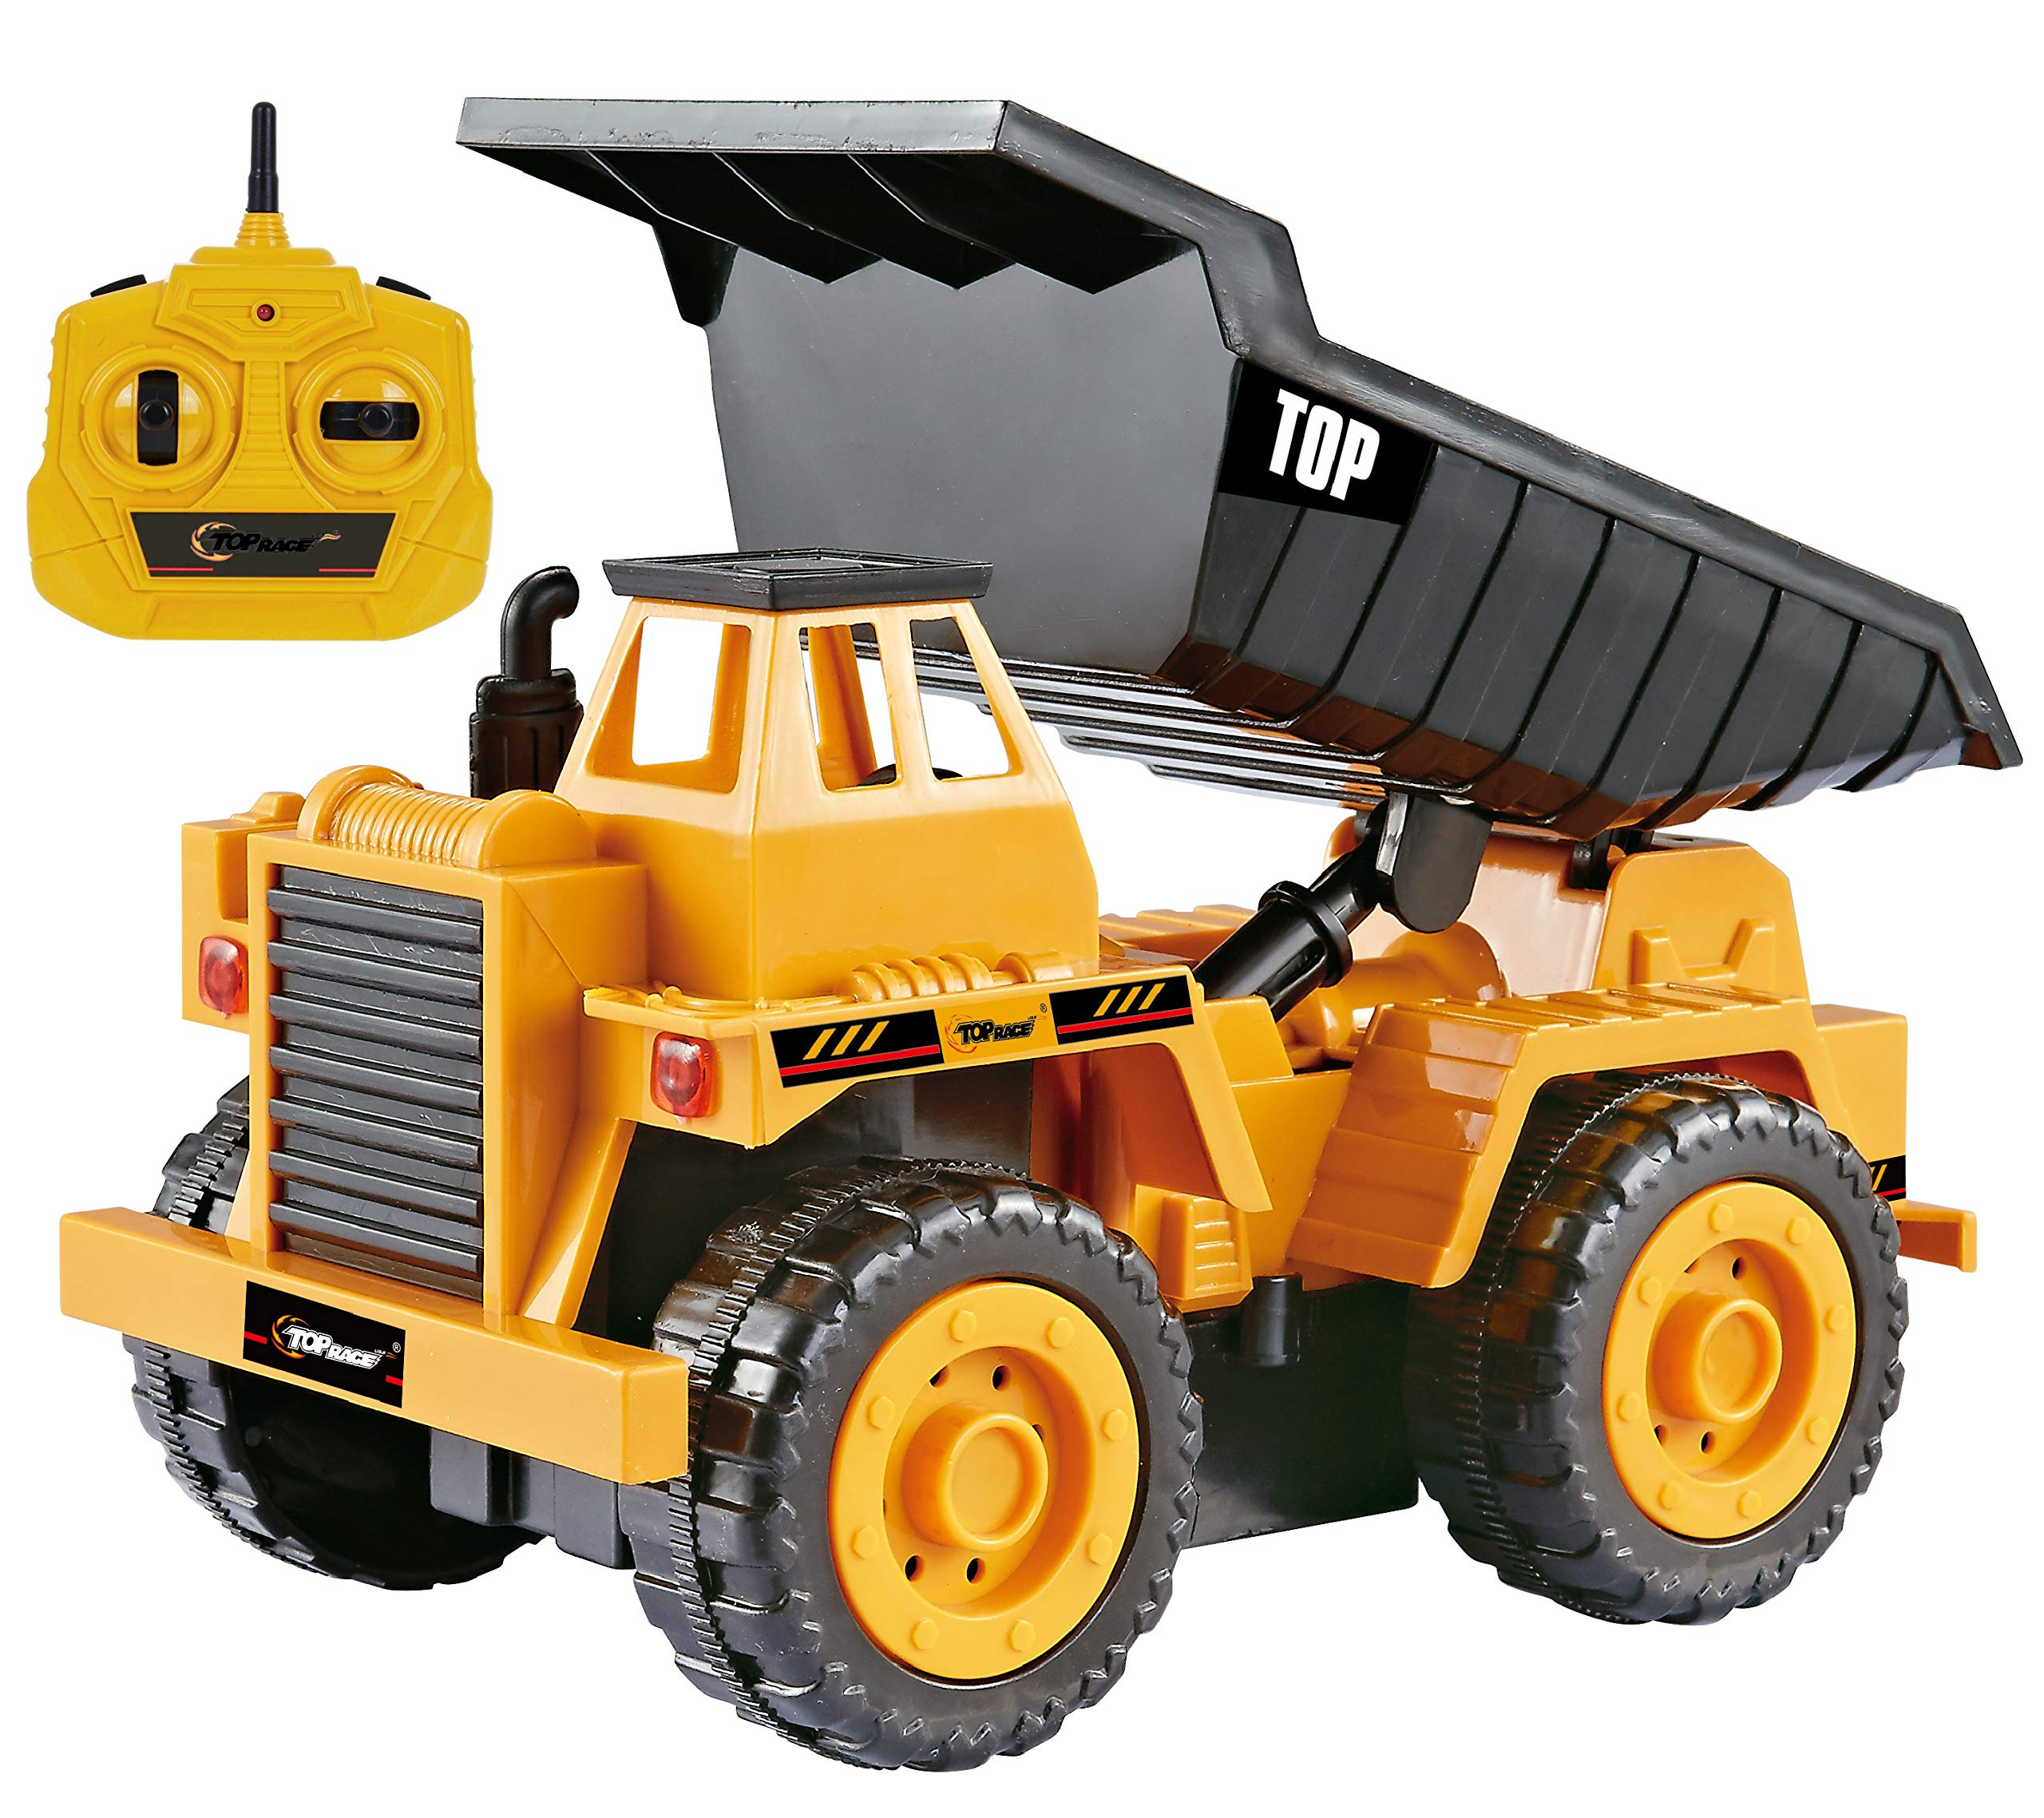 Top Race 5 Channel Fully Functional Remote Control Construction Truck Kids Size Designed for Small Hands (Dump Truck) by Top Race (Image #1)